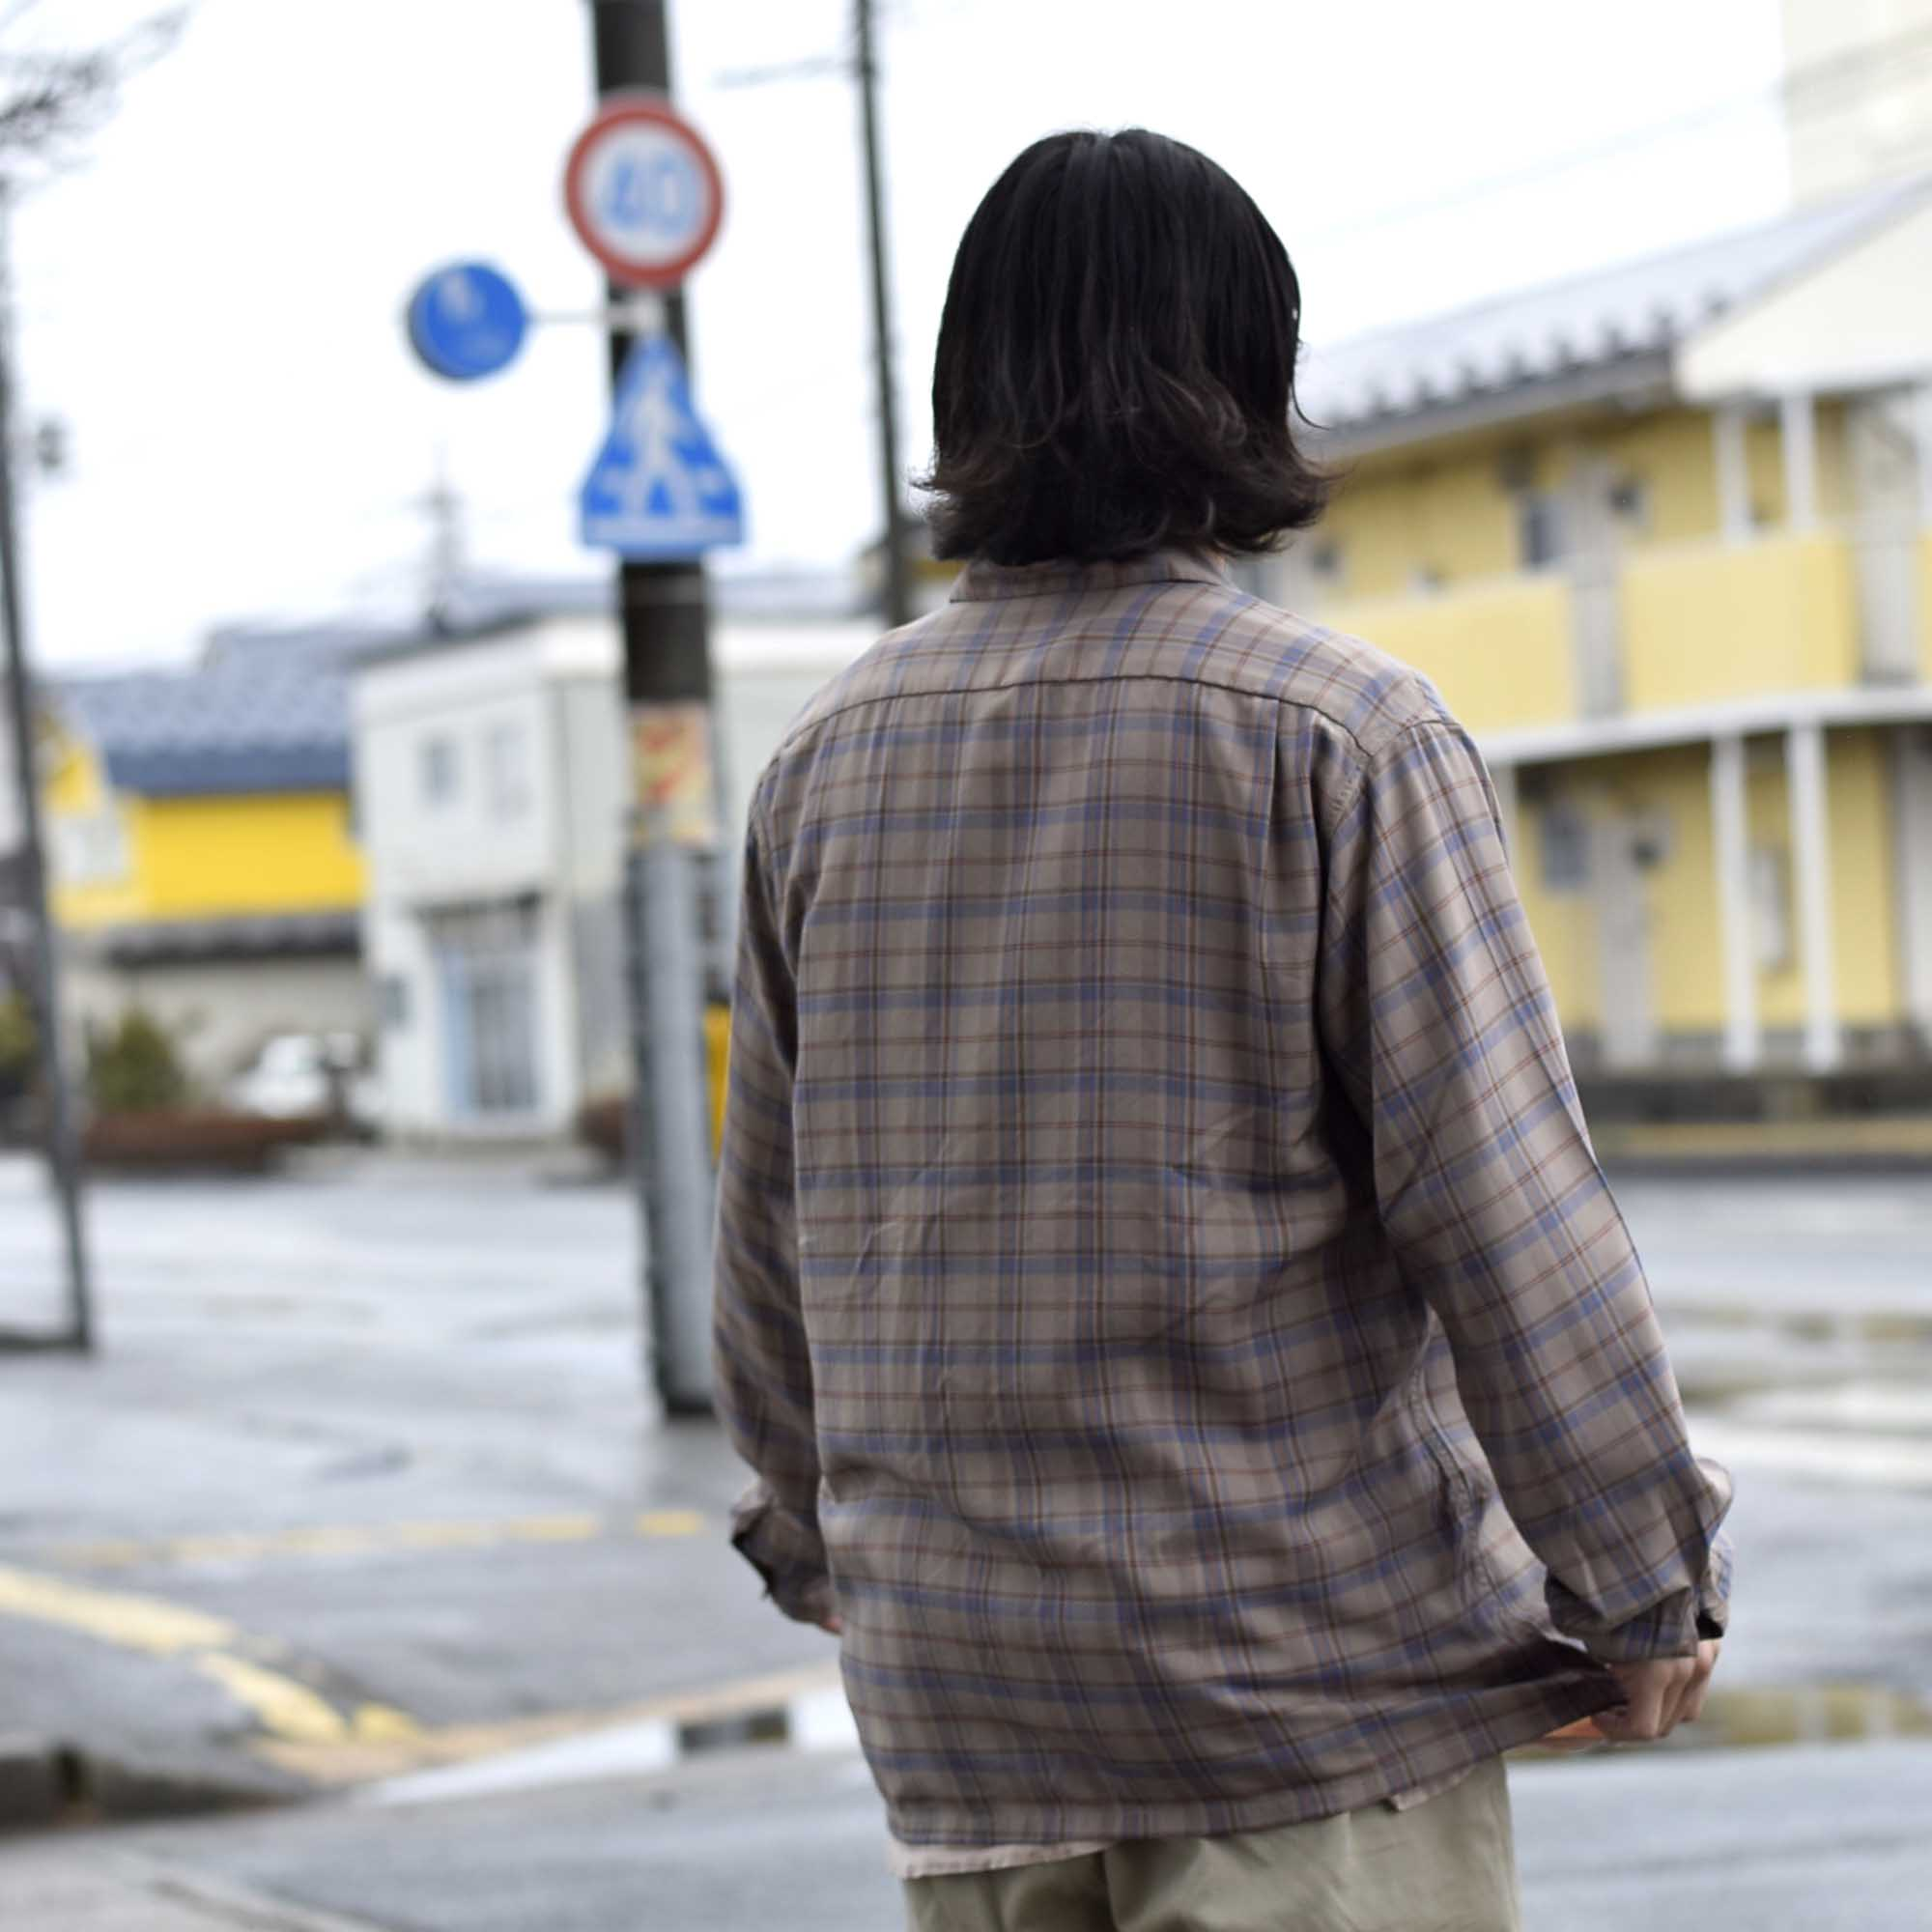 TOWN CRAFT / CLASSIC CHECK OPEN SHIRTS (Gray)着用イメージ② 162cm / sizeM